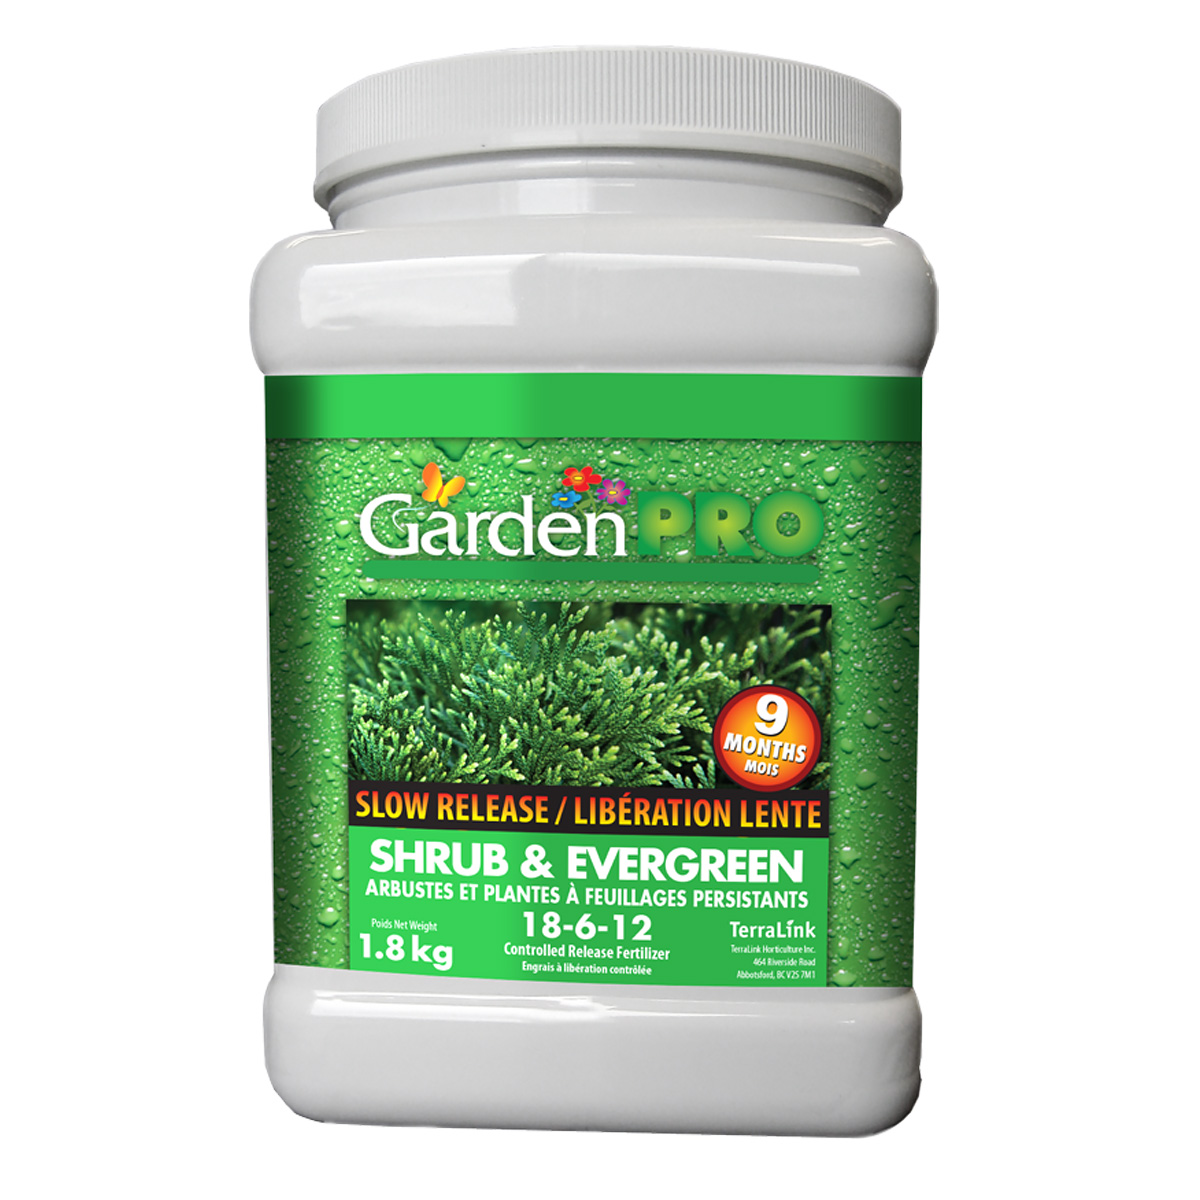 Garden Pro Slow Release Shrub and Evergreen Fertilizer 18-6-12 1.8kg